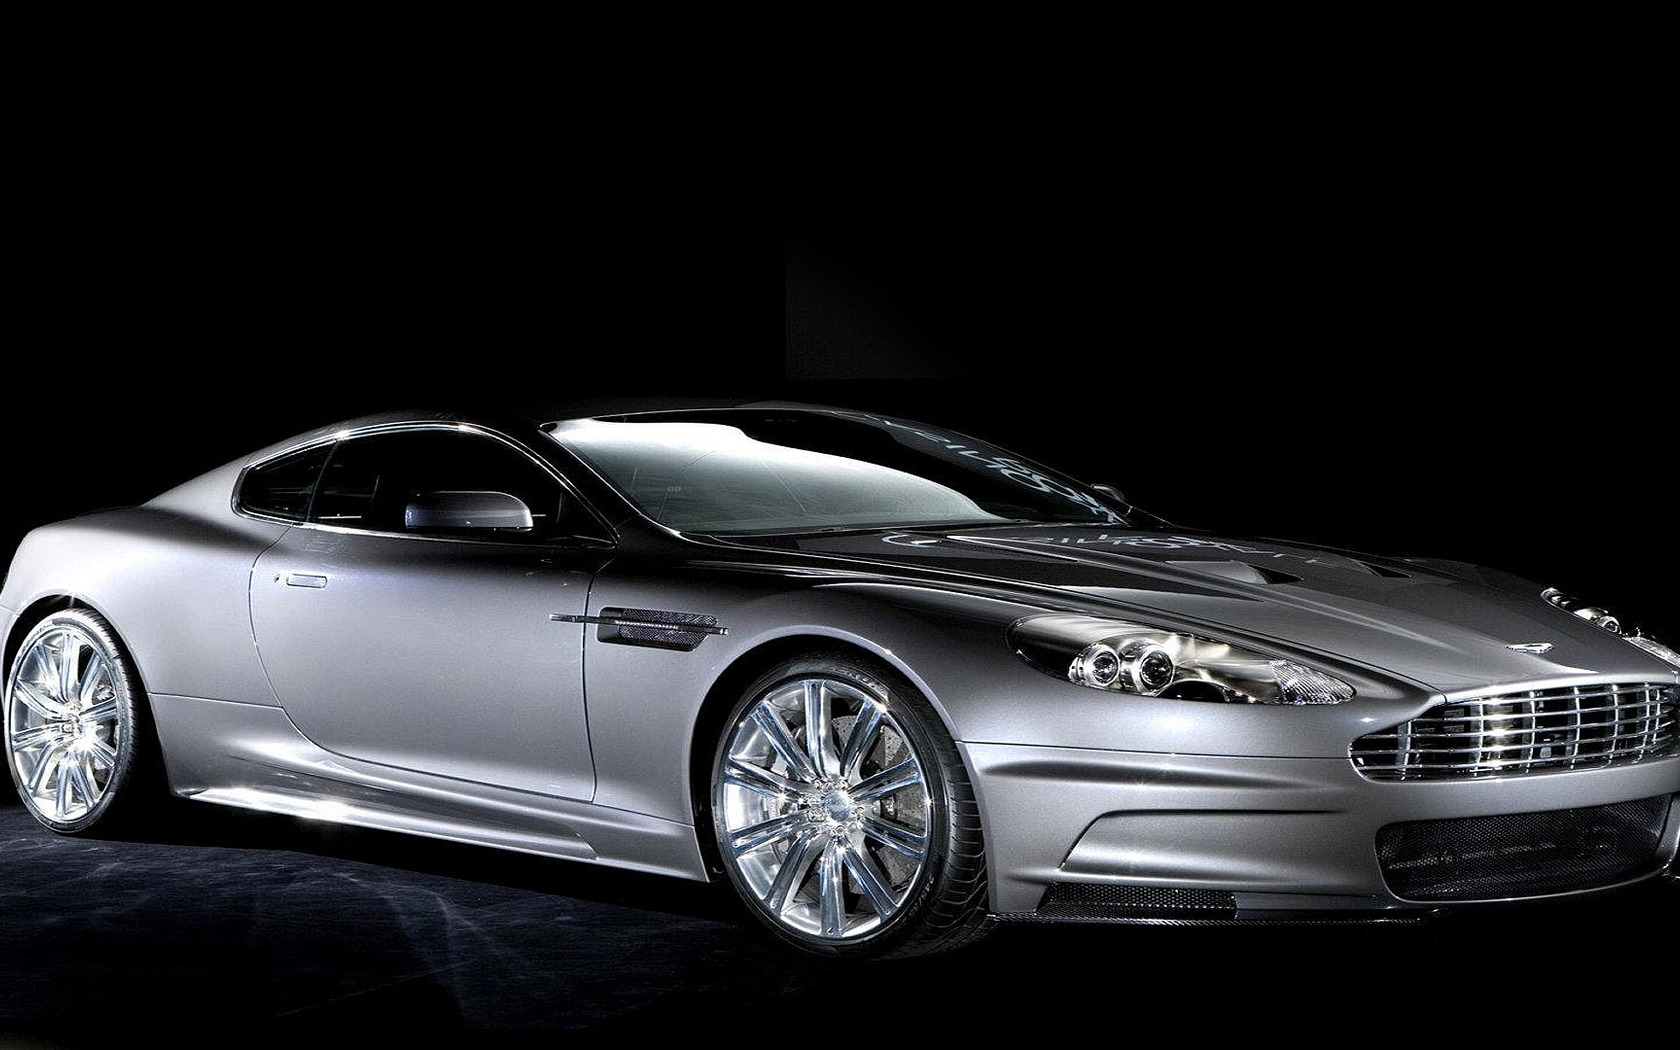 Aston Martin DBS wallpaper 12248 1680x1050